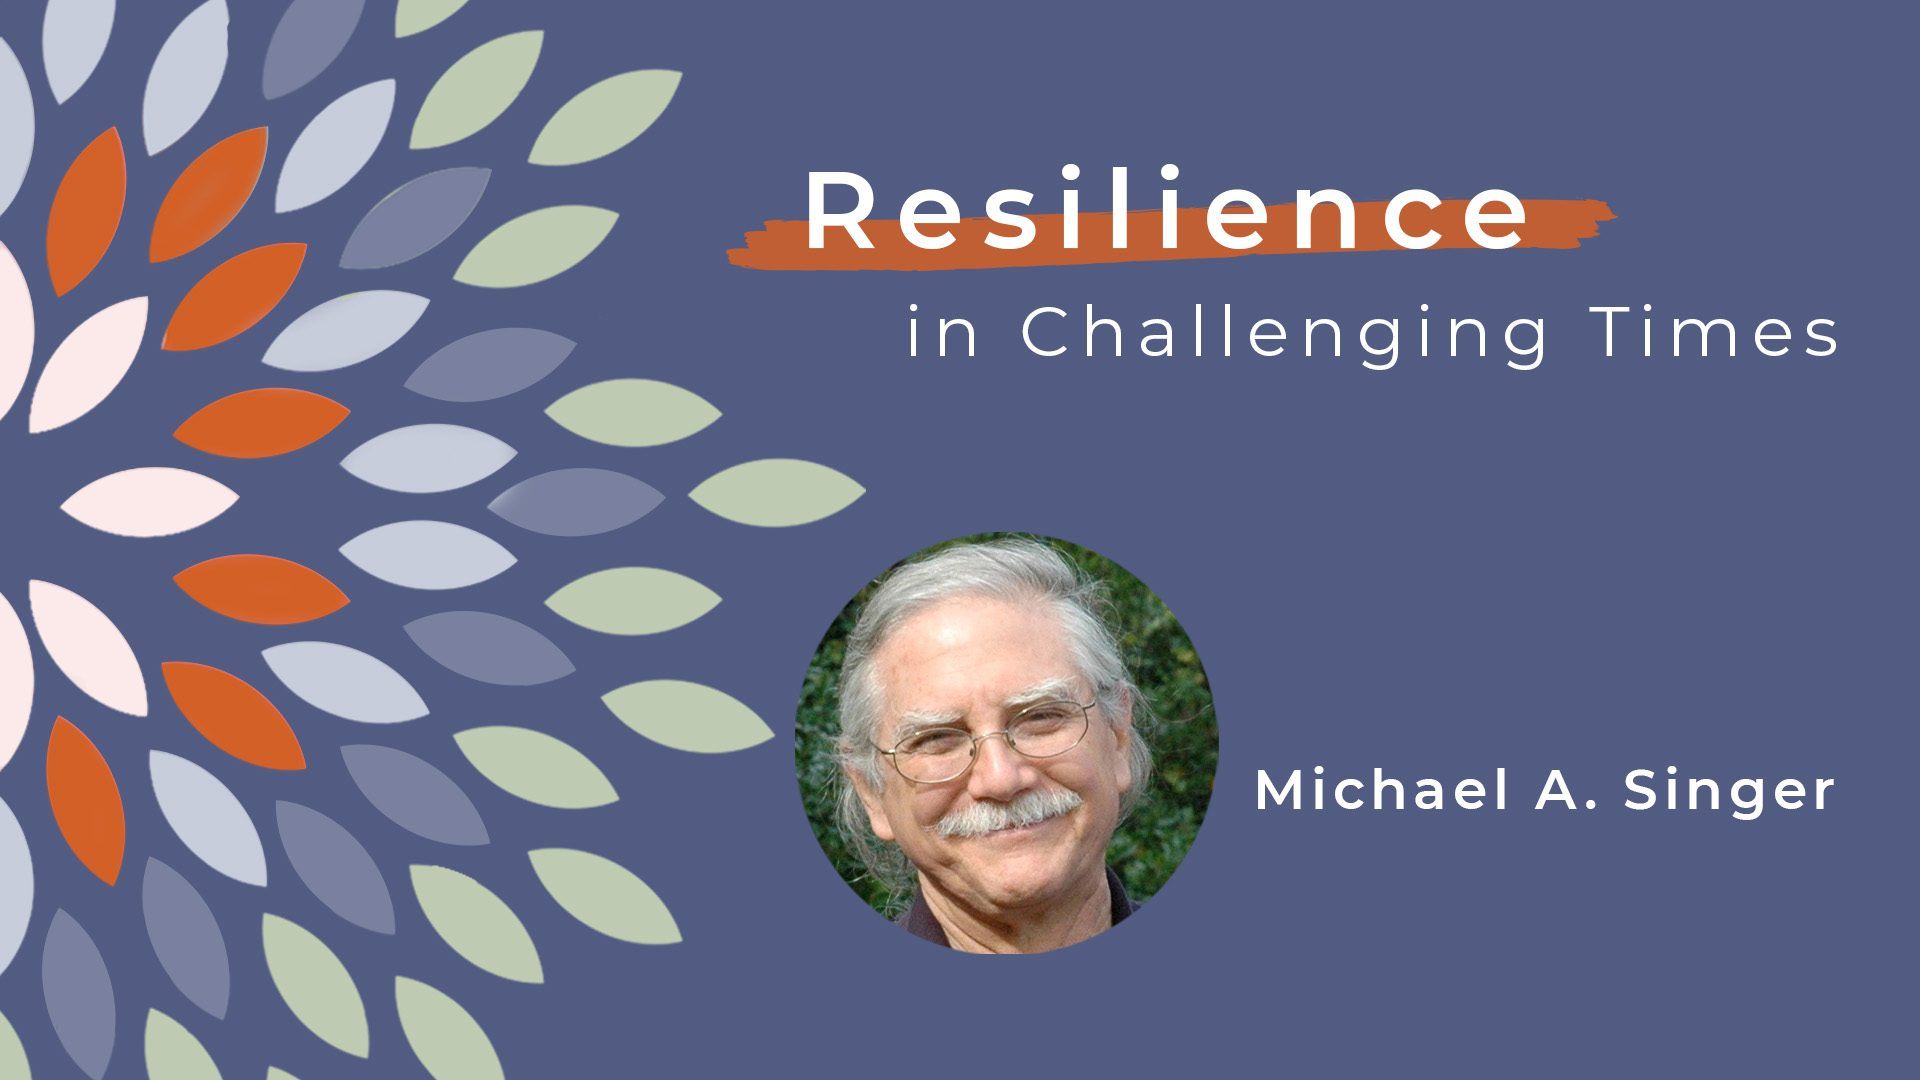 Resilience-social-mickey-singer-title-card